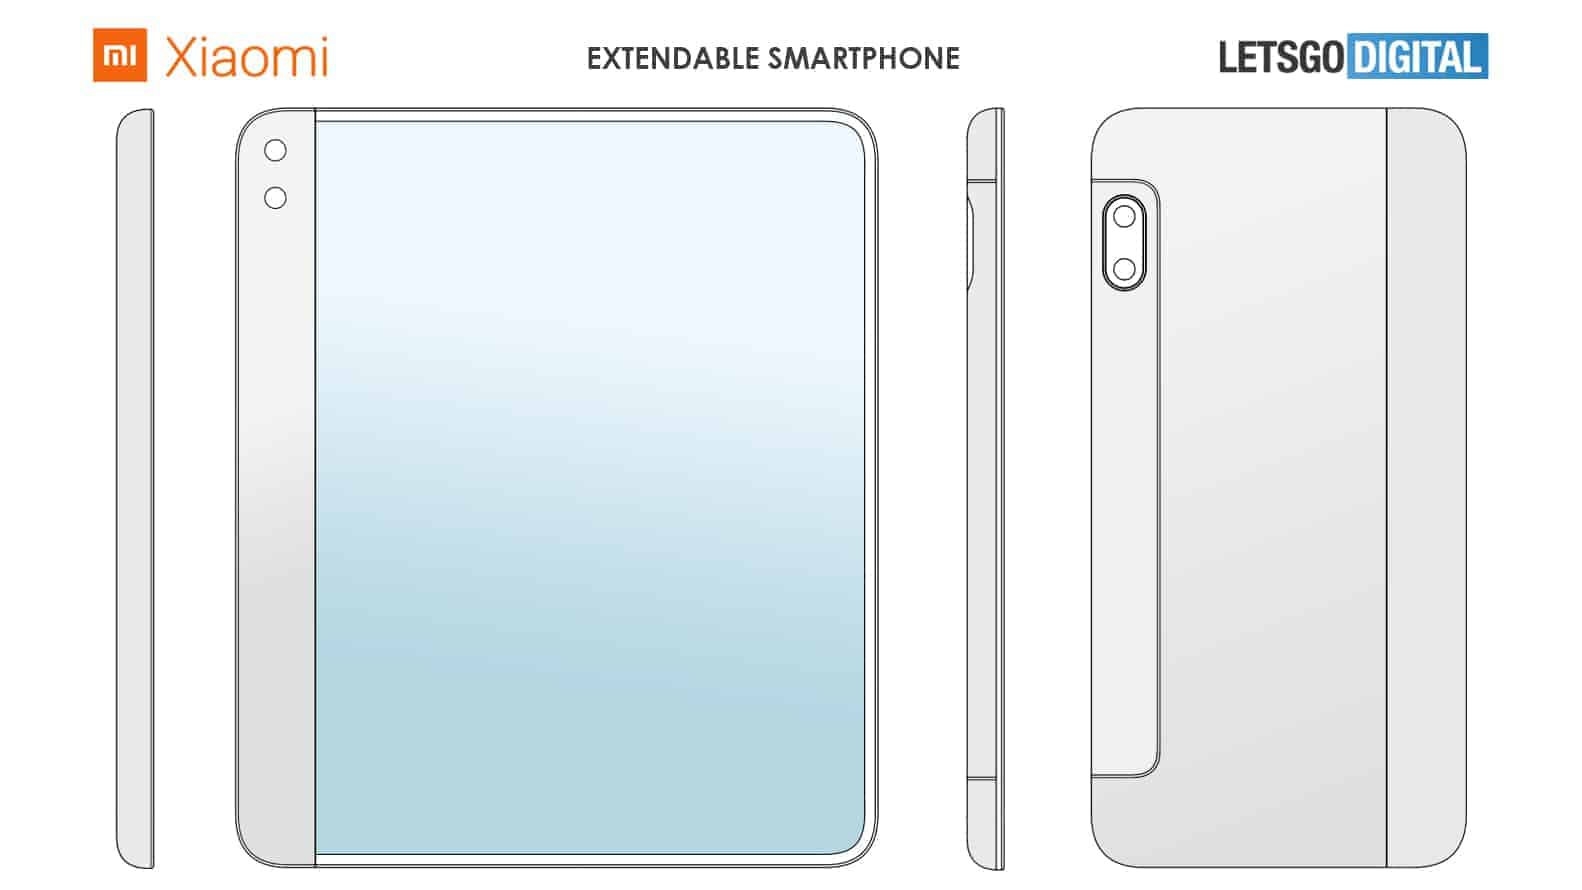 Xiaomi smartphone with extendable display patent 2